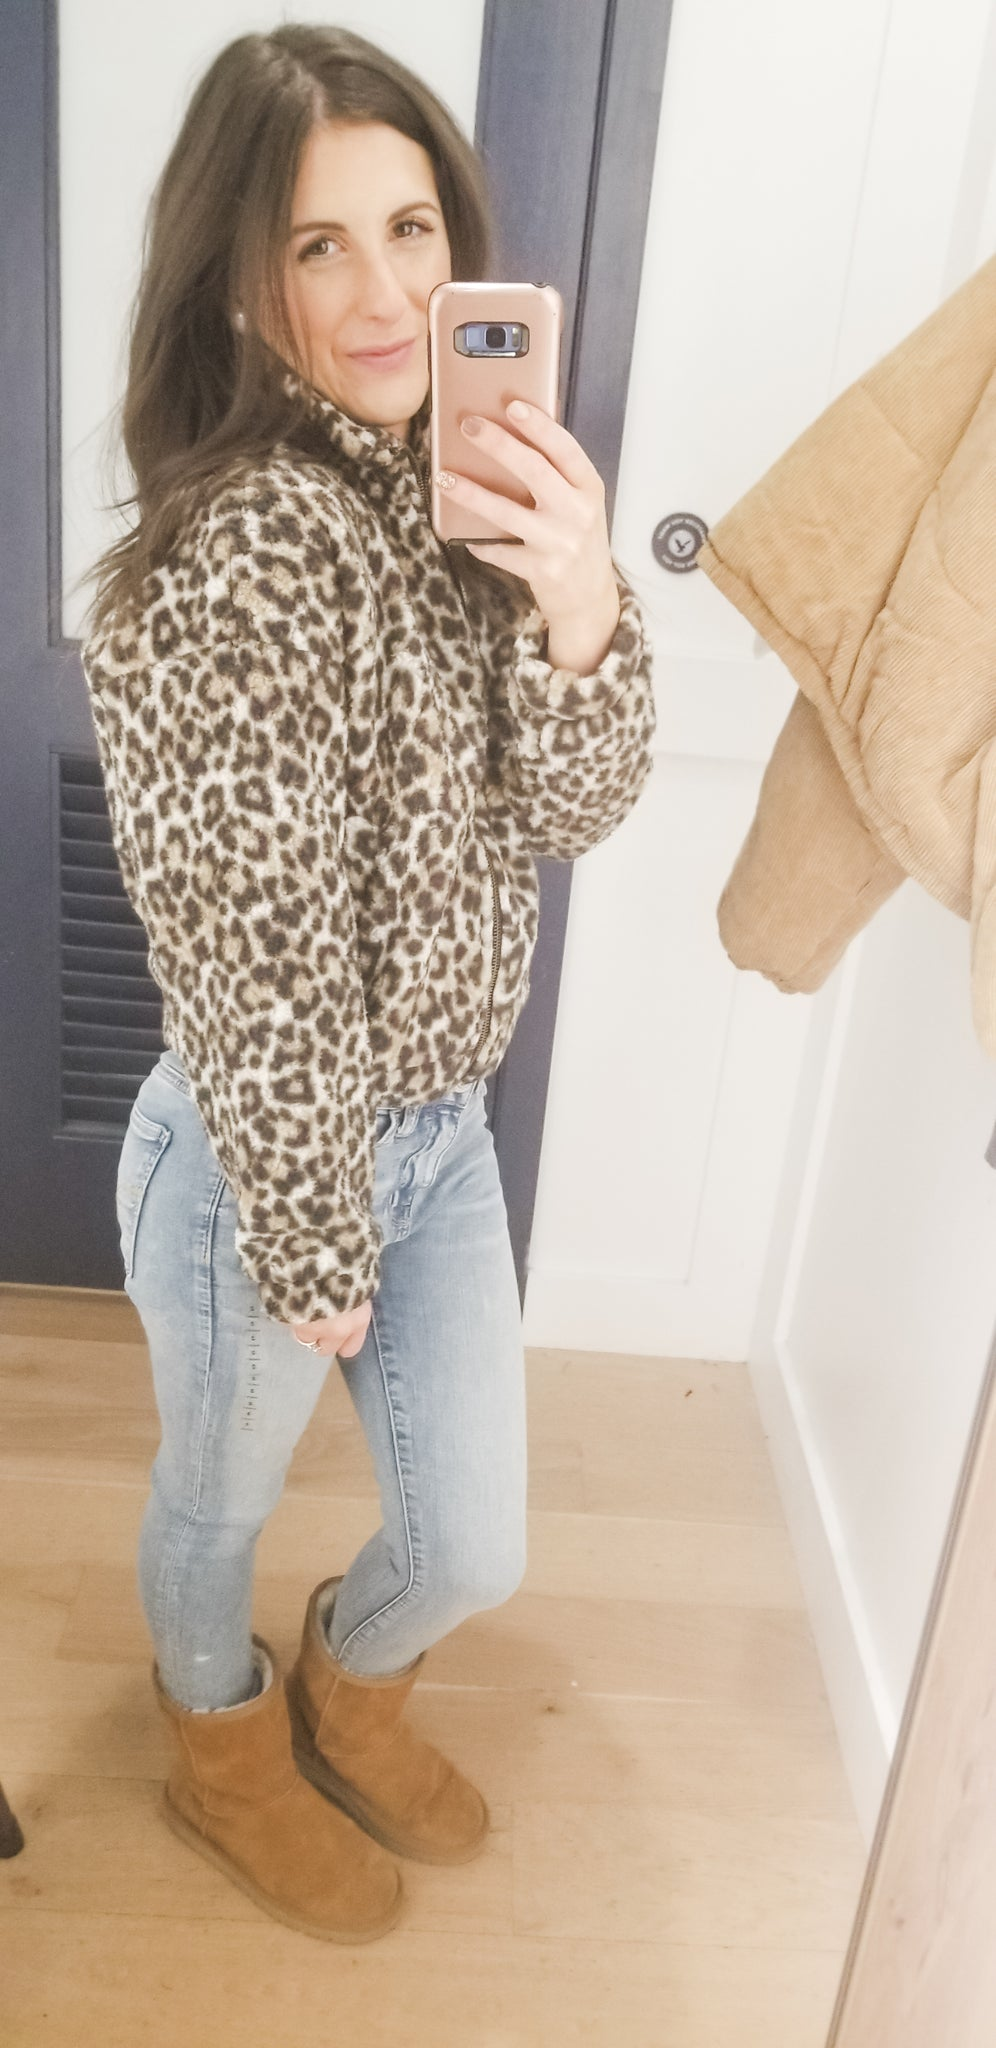 Cheetah Fleece Jacket